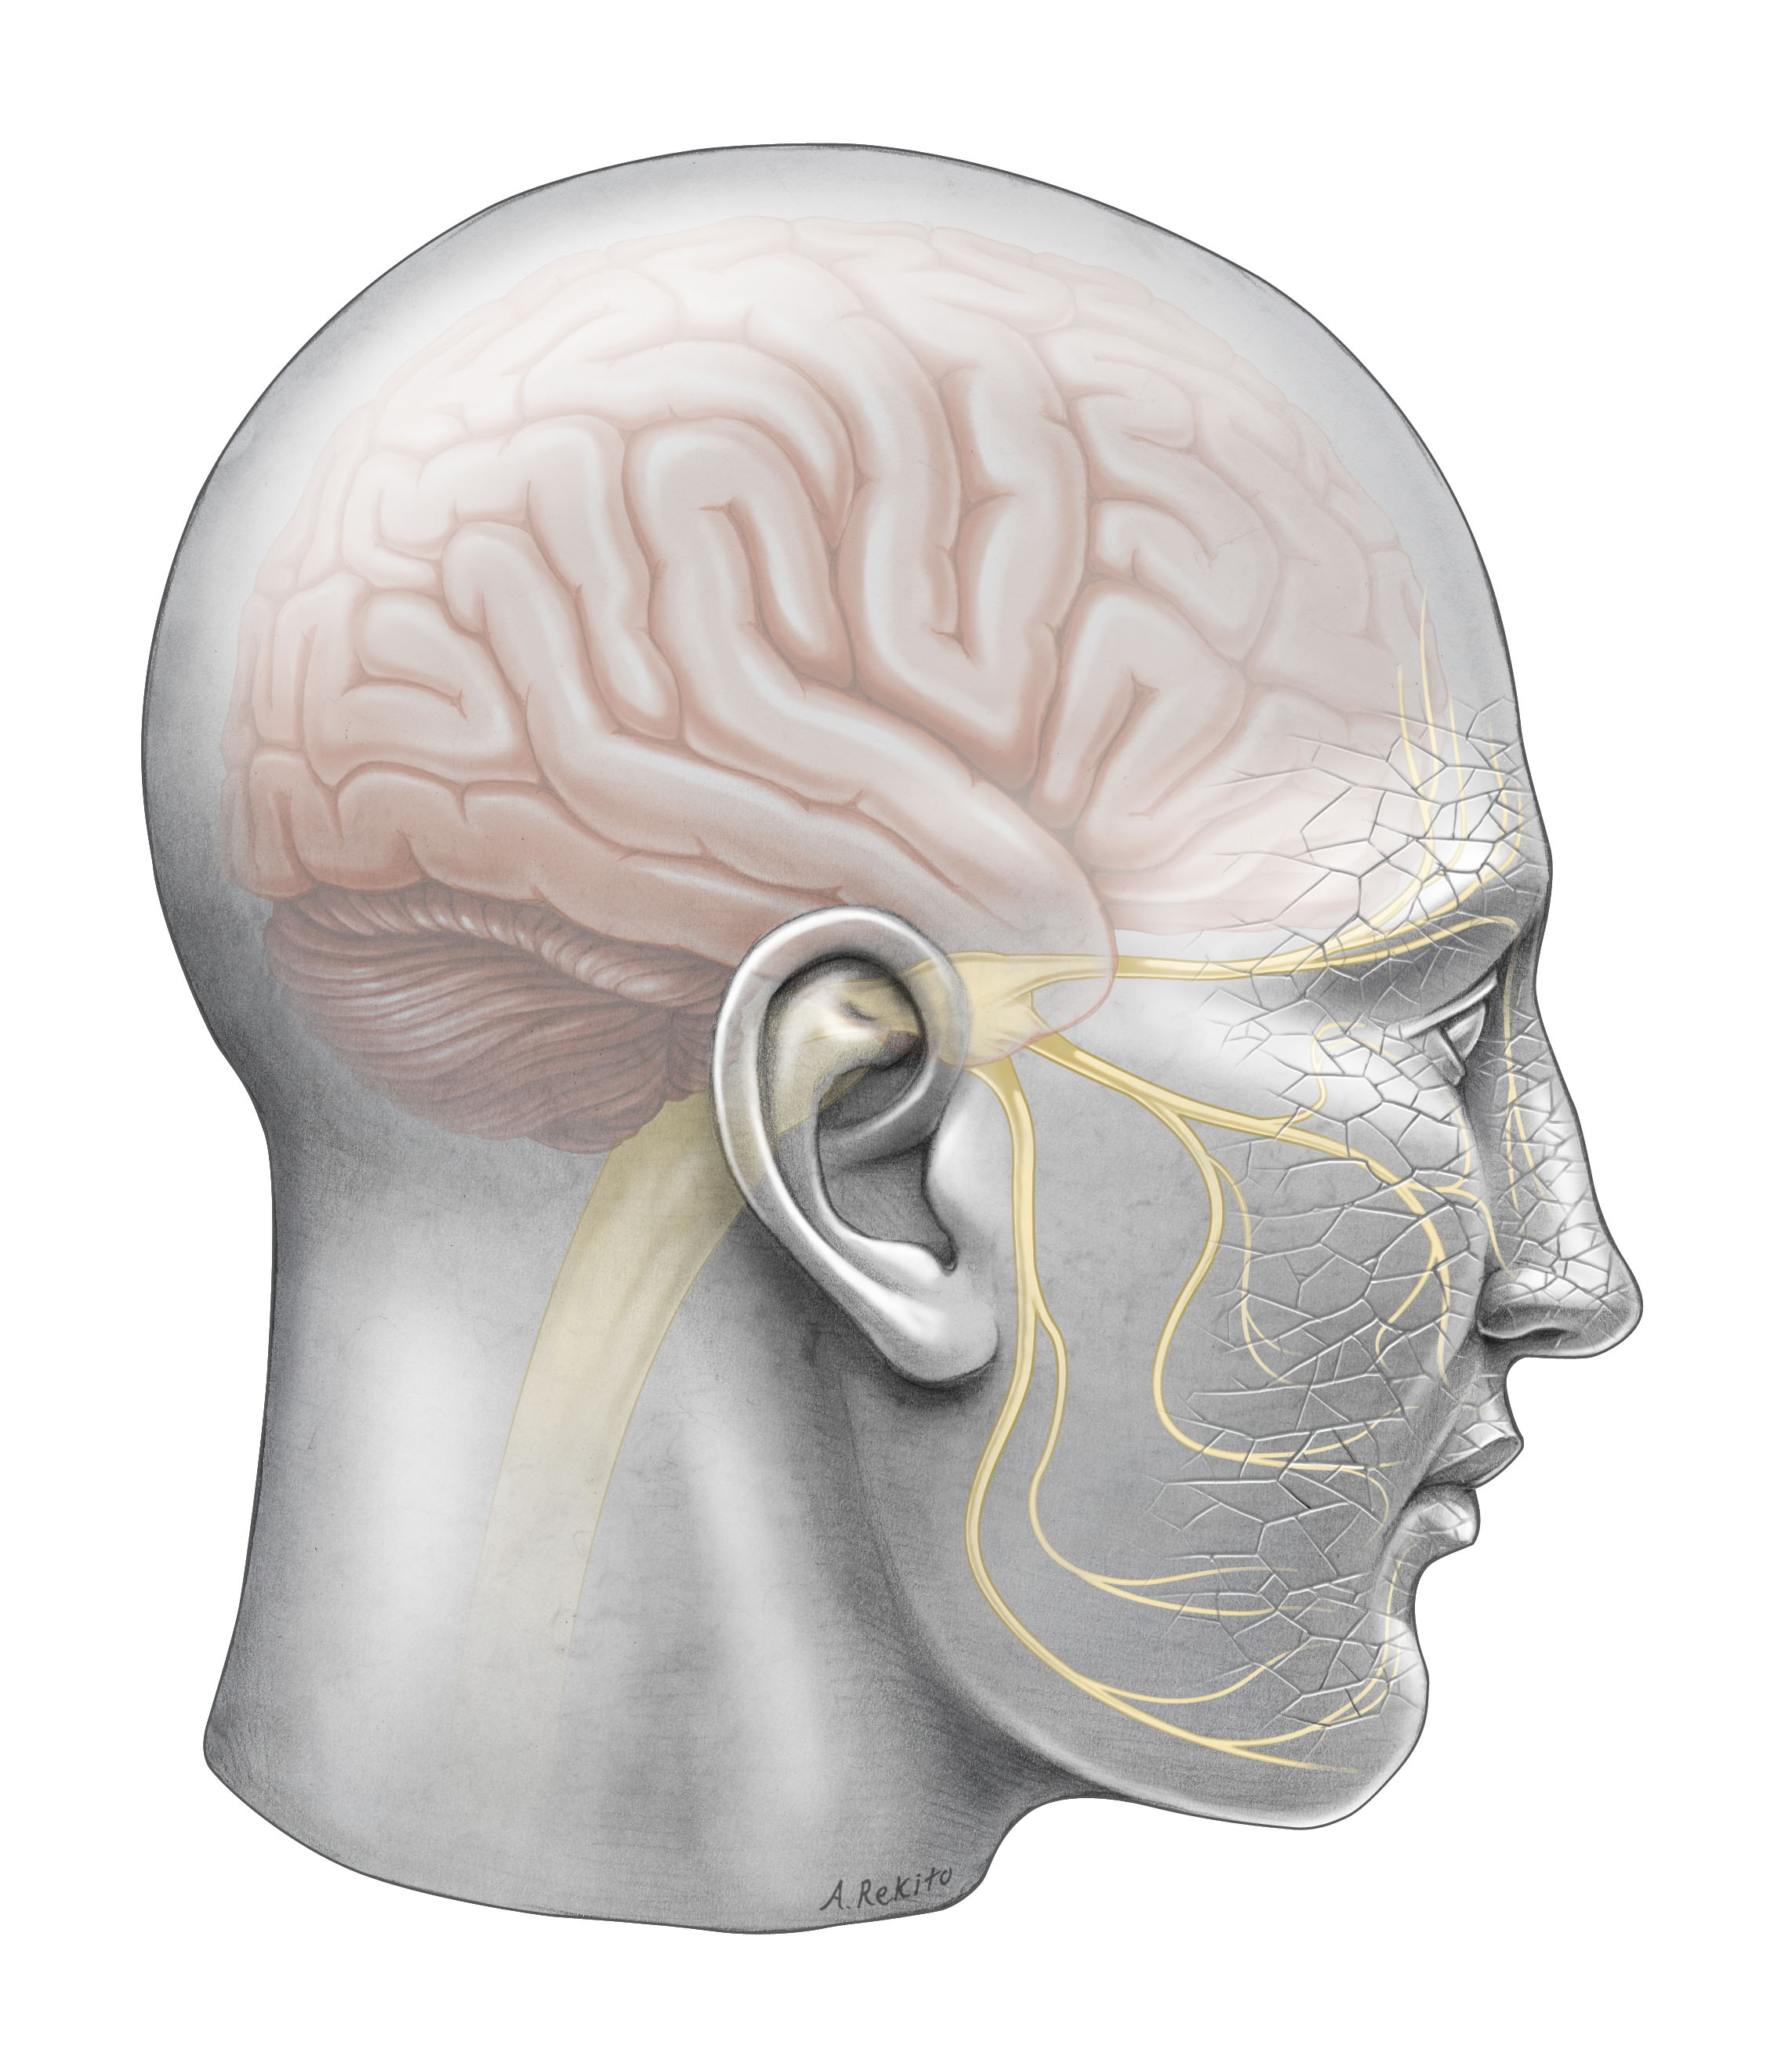 Andy Rekito/OHSU: The trigeminal nerve branches across each side of the face